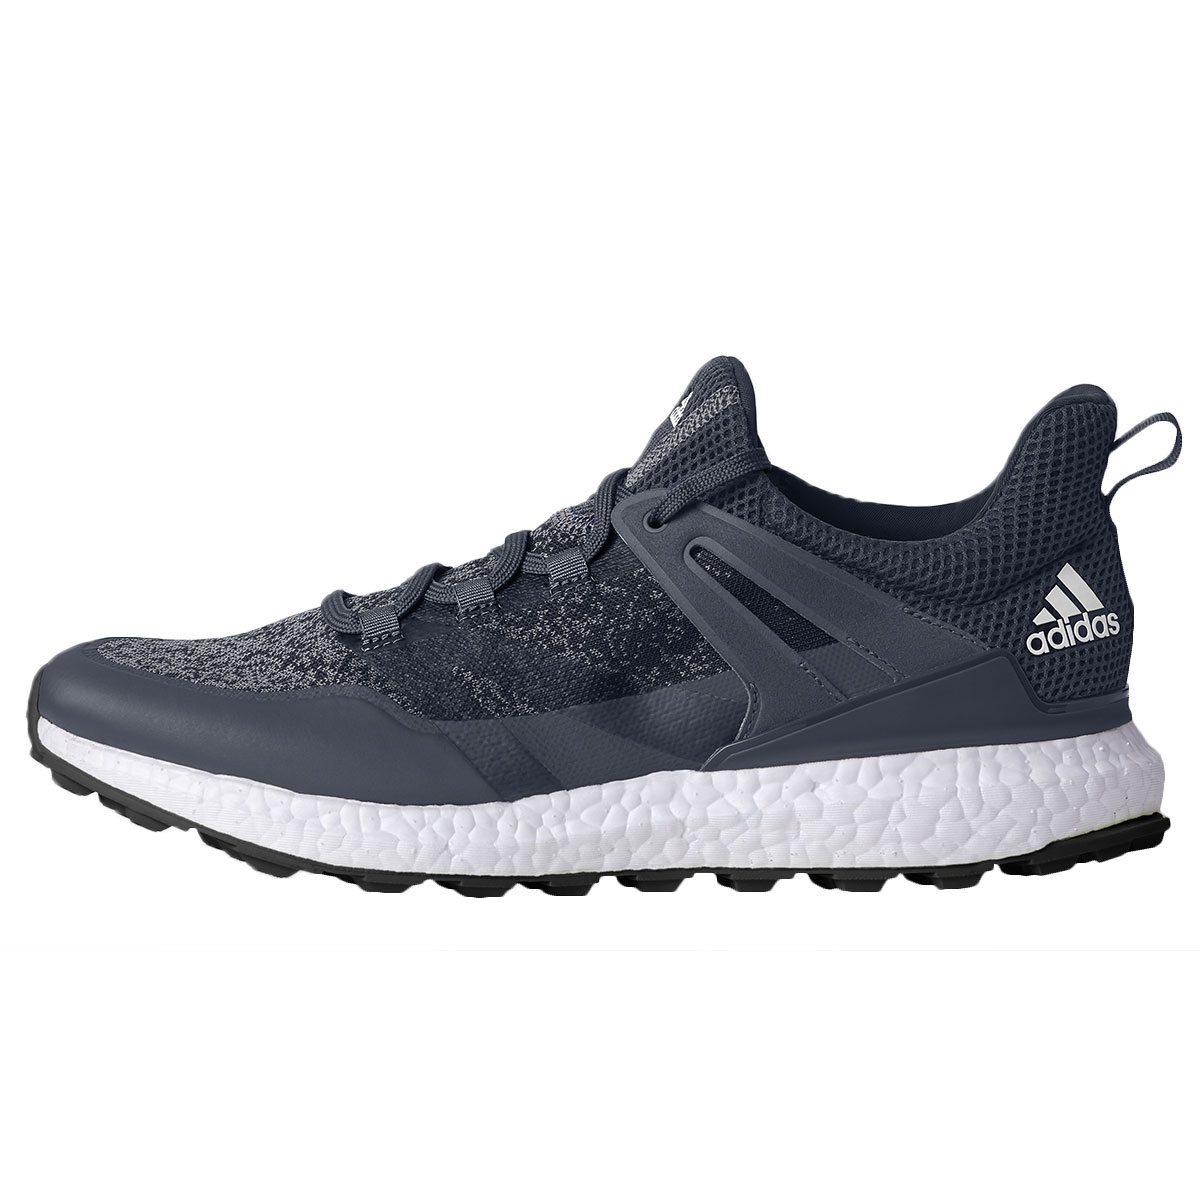 194fa1d0185 Adidas Shoes 2017   Shop Adidas Shoes For Men · Women ·Kids ...